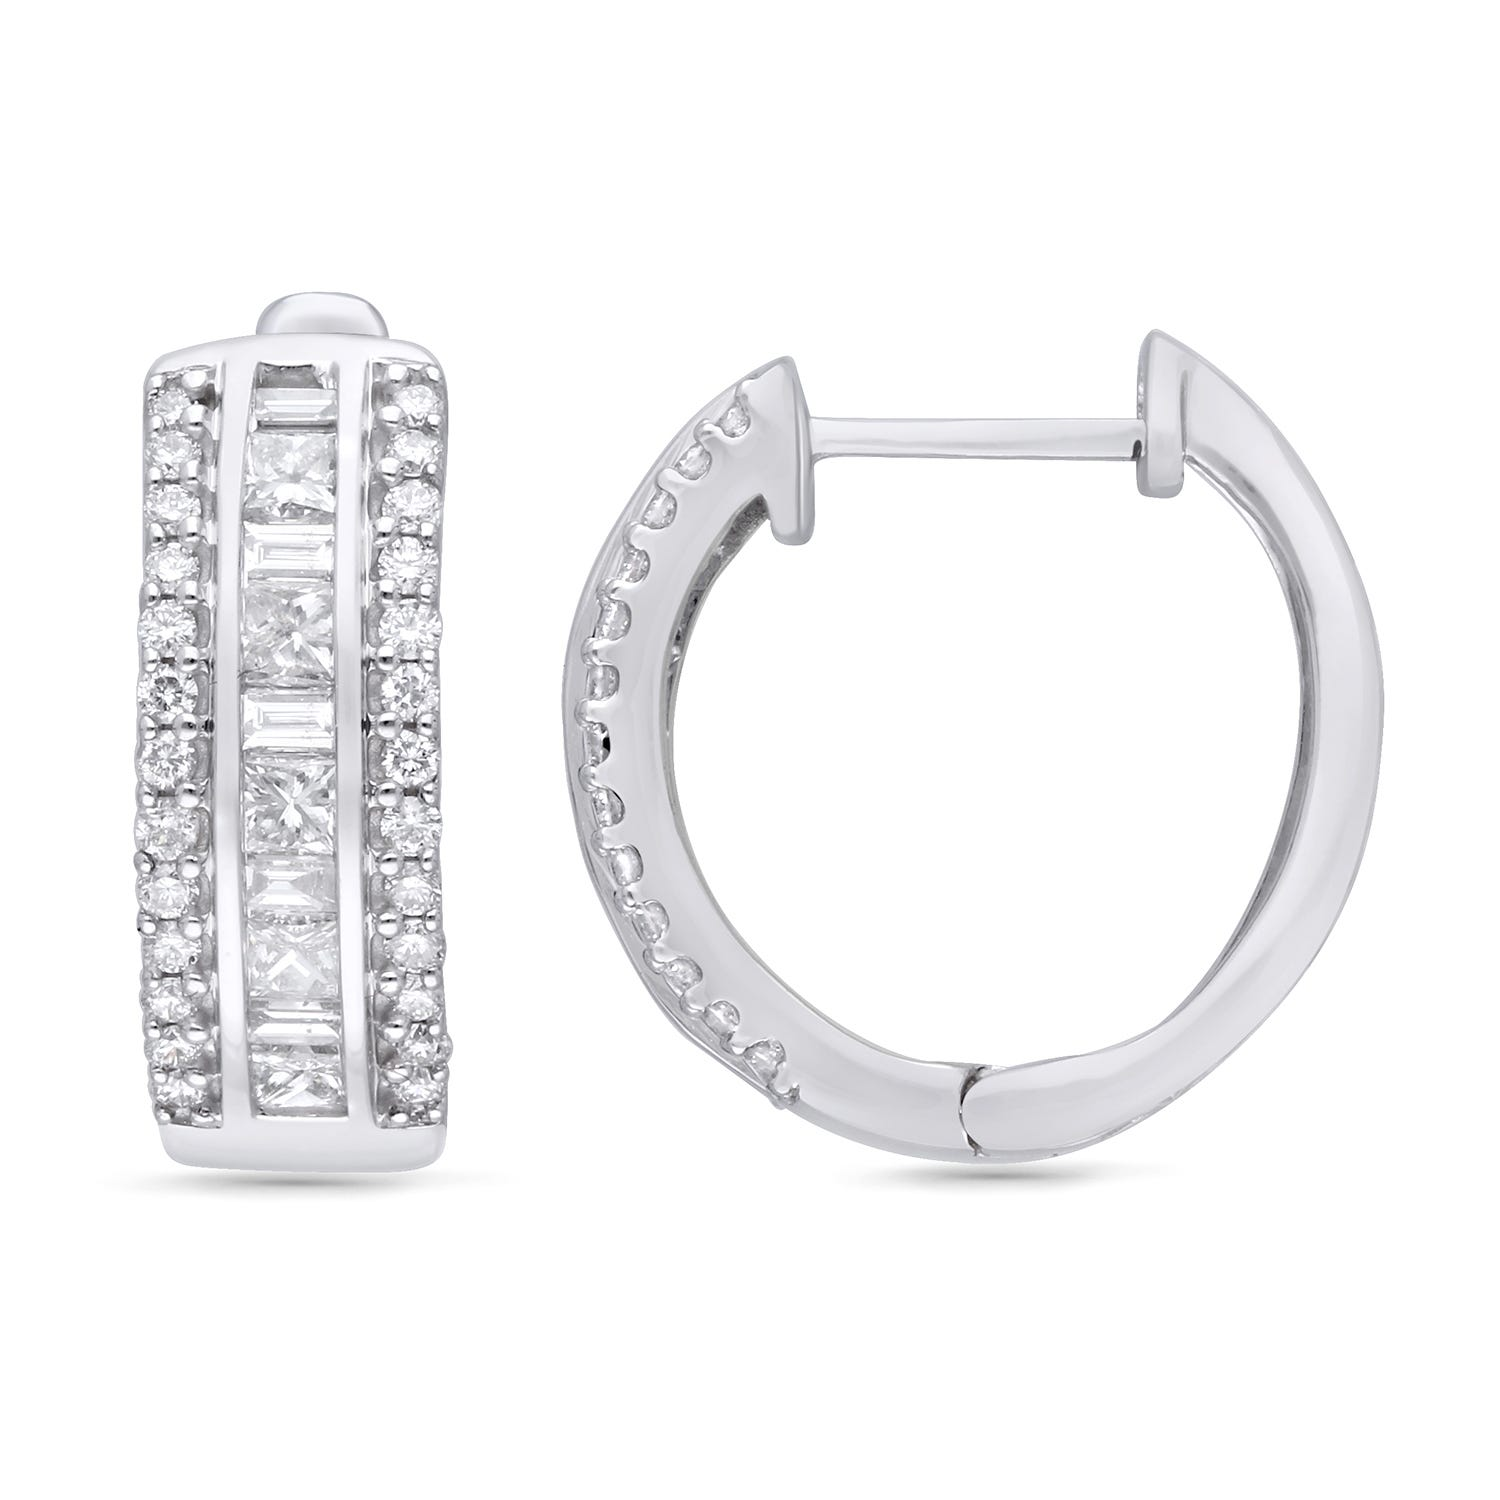 Hoop Earrings 1ctw in 14k White Gold